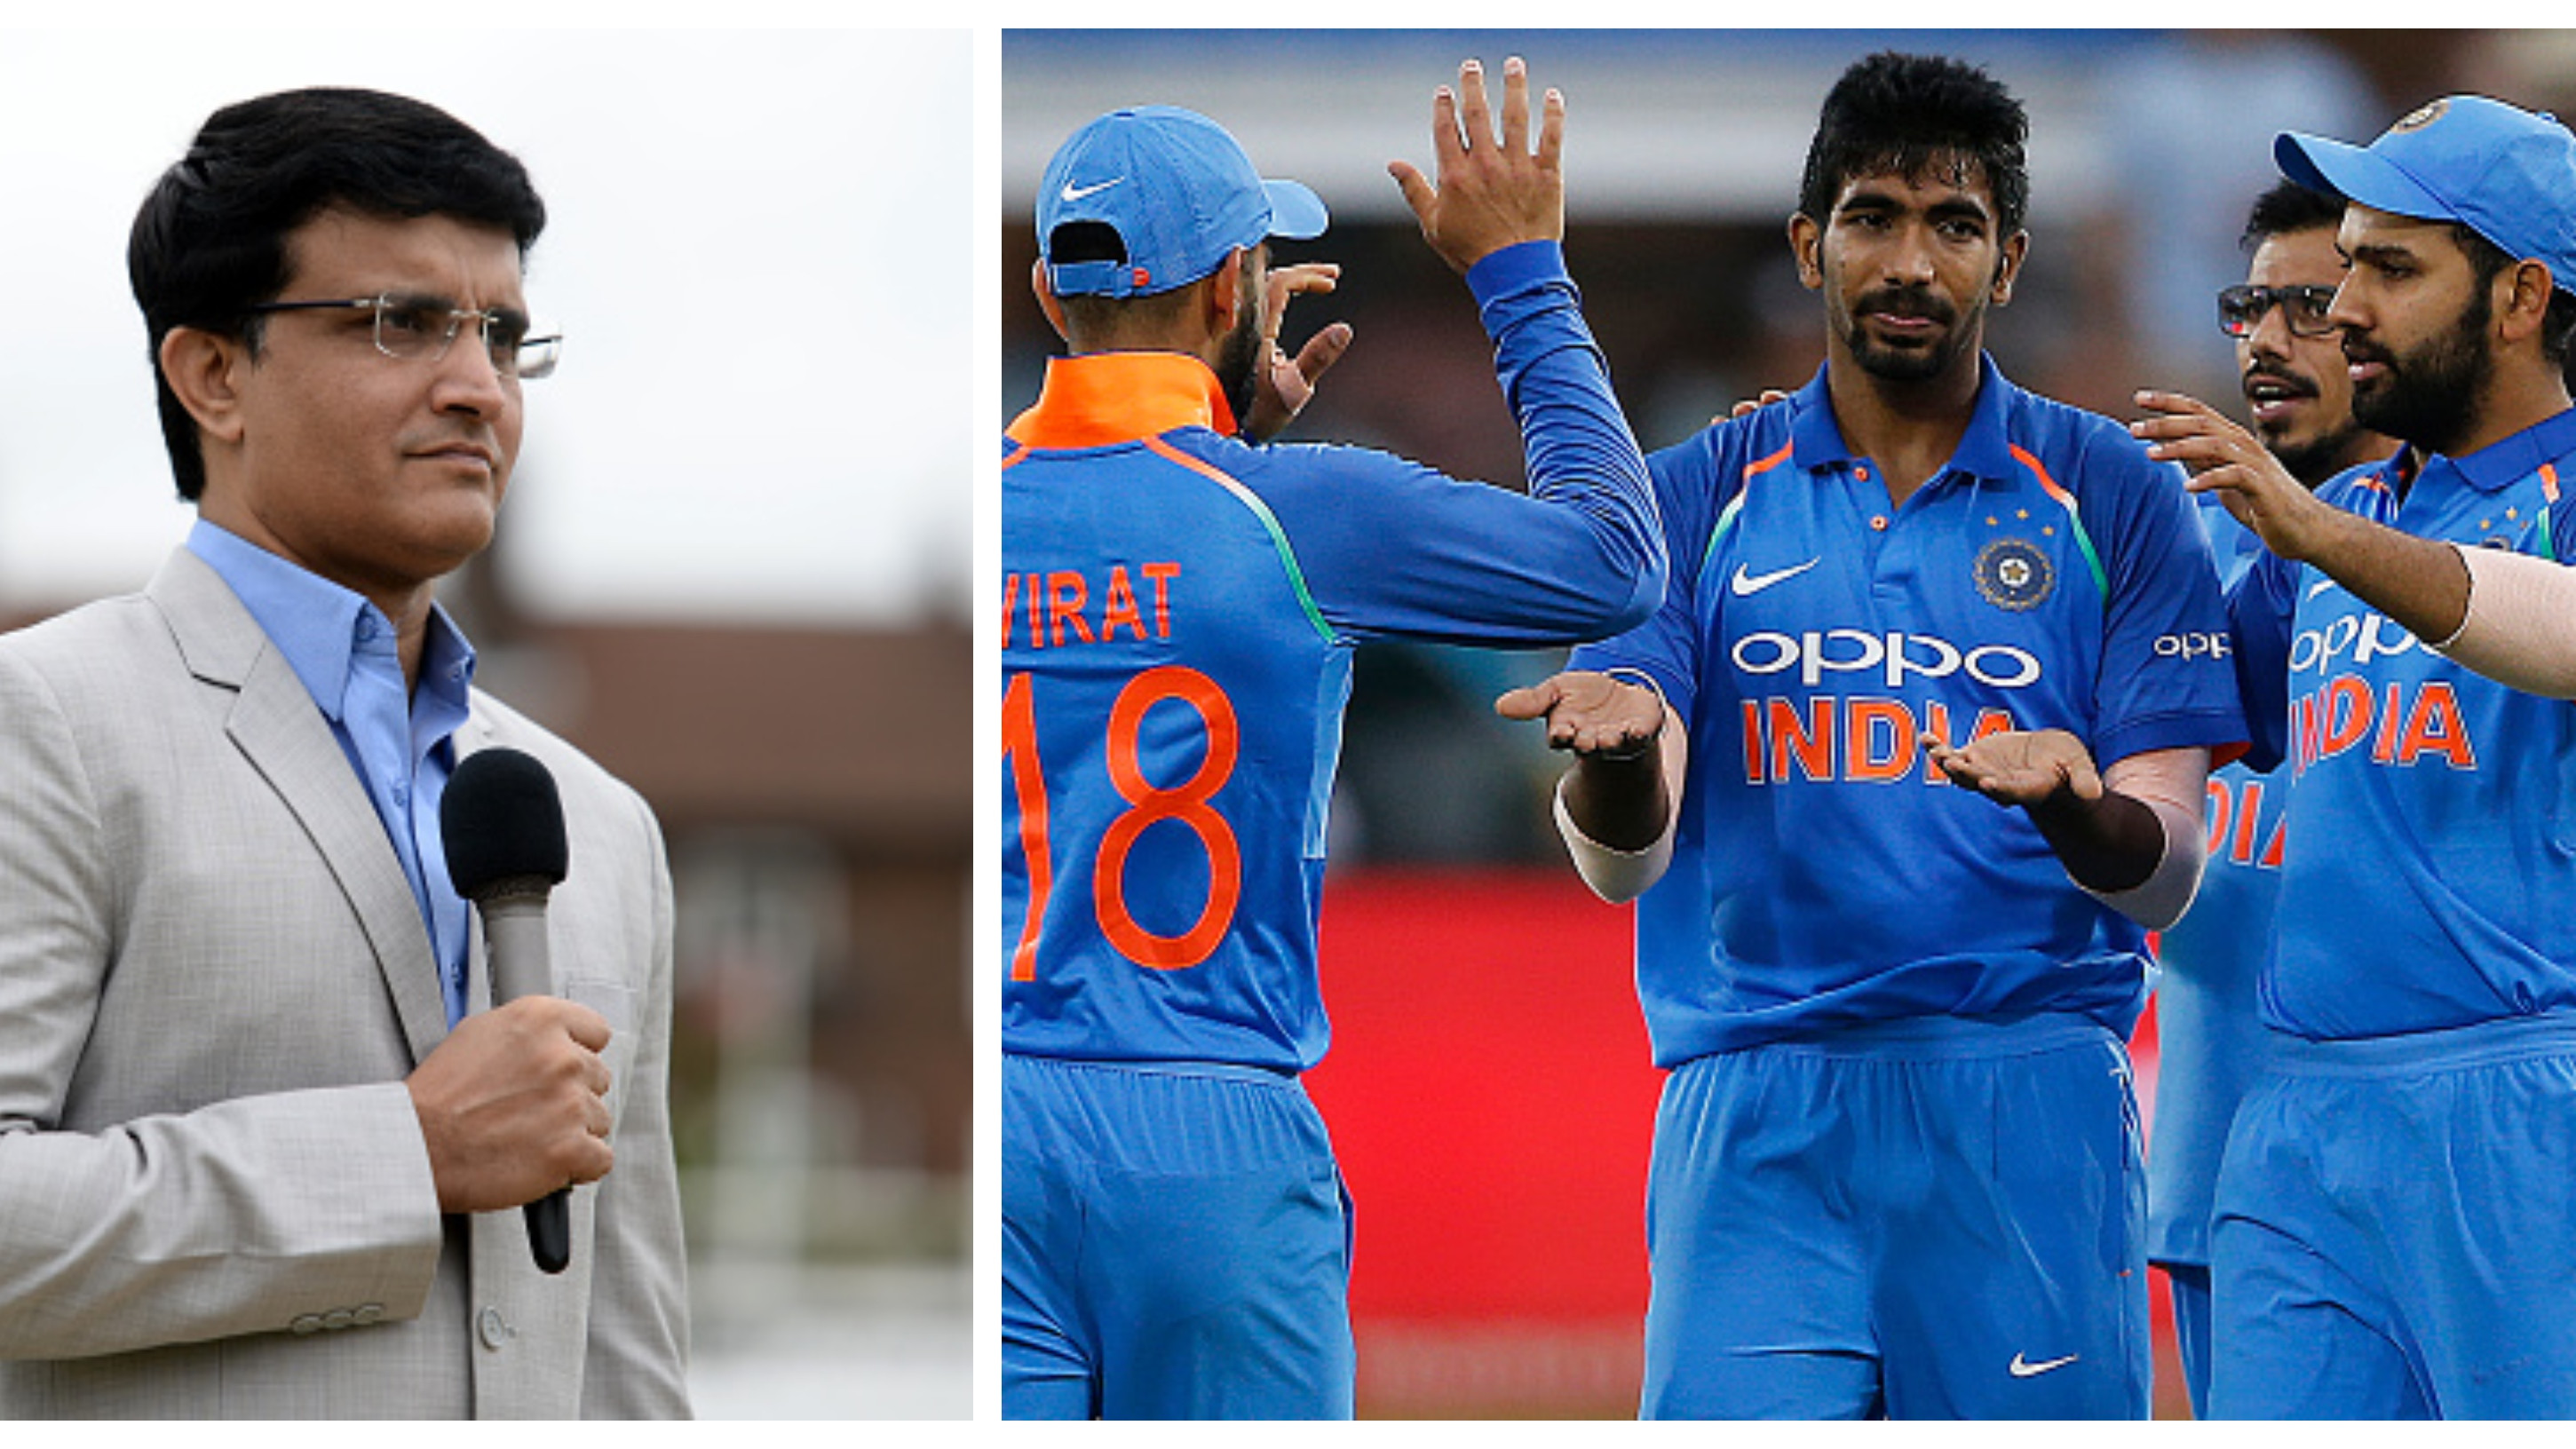 AUS v IND 2018-19: Without Bumrah India's bowling becomes their weaker suit, says Ganguly